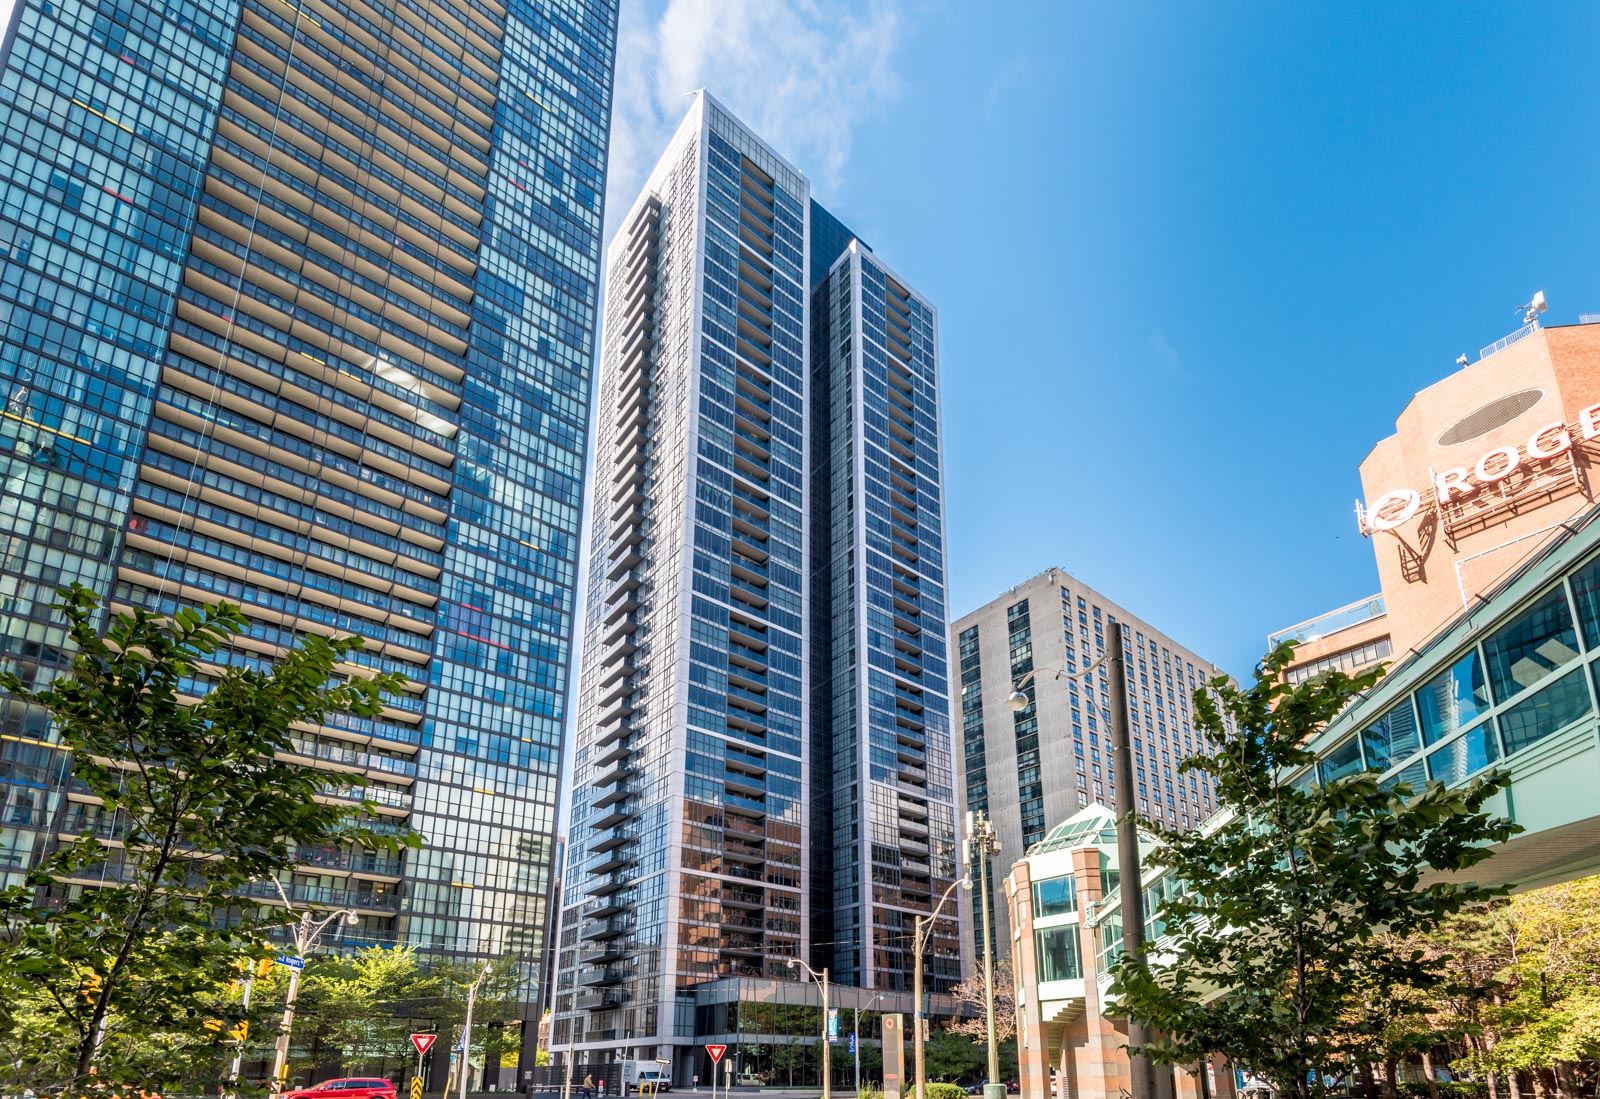 Daytime across-the-street view of The Couture Condos, a 42-floor building with highly-reflective glass.